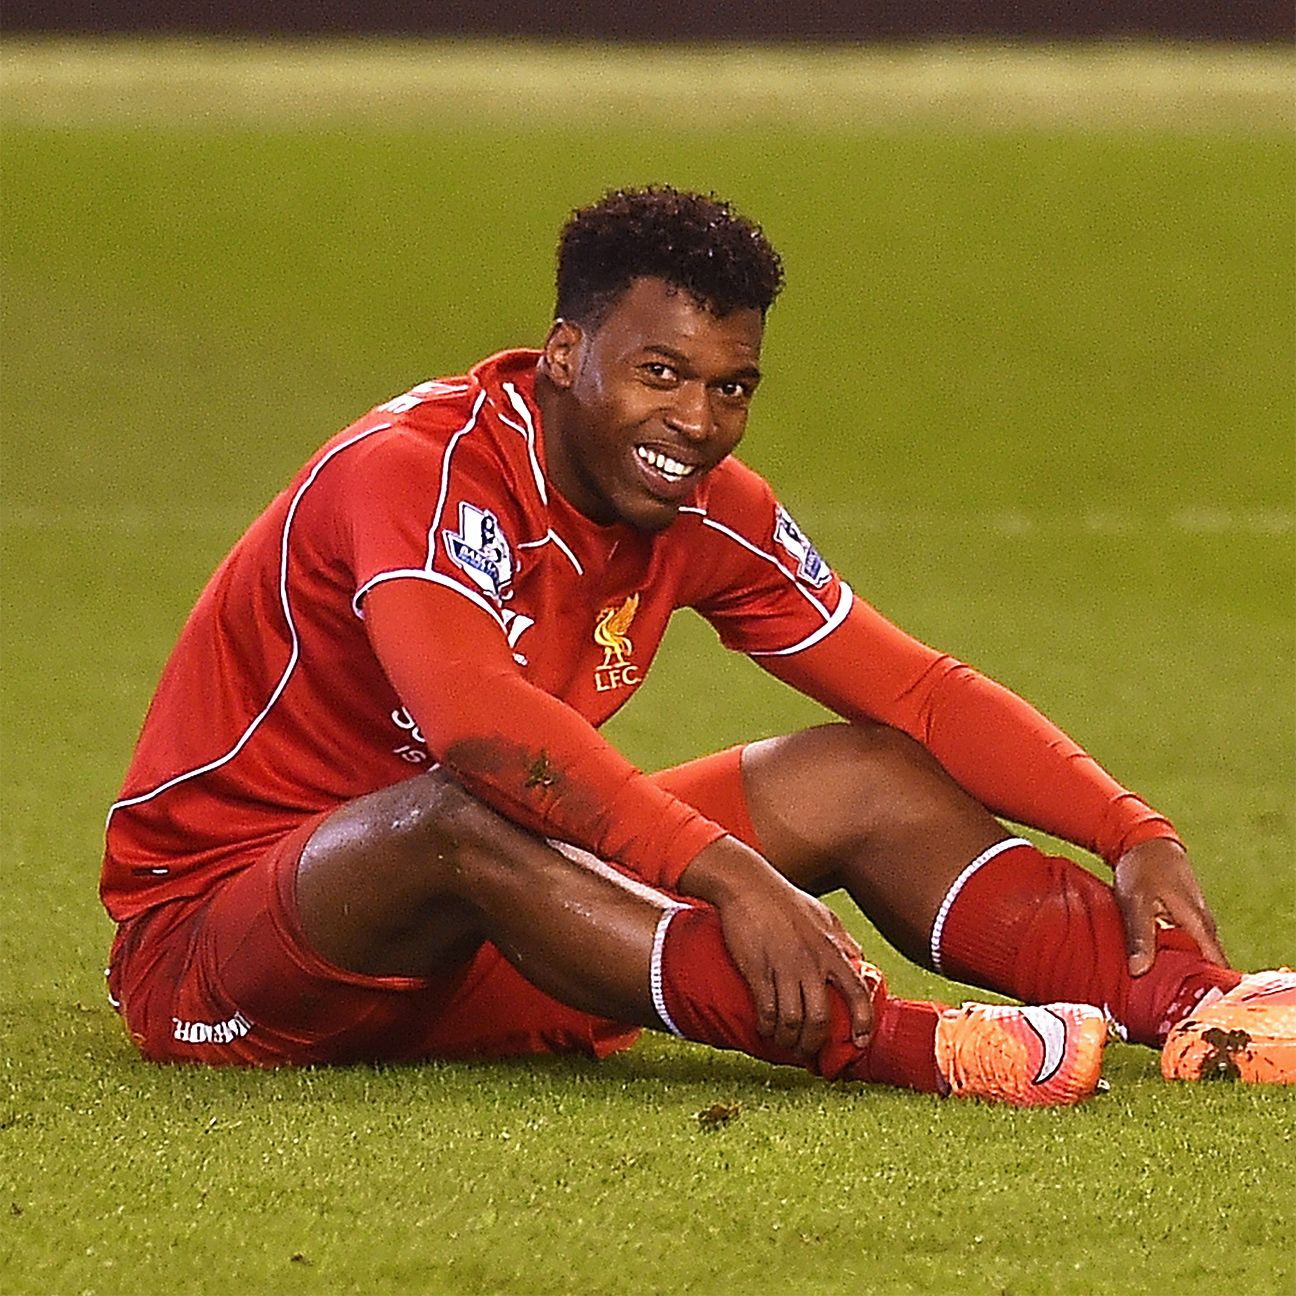 An assortment of injuries in the last 18 months has plagued Daniel Sturridge's progress at Liverpool.